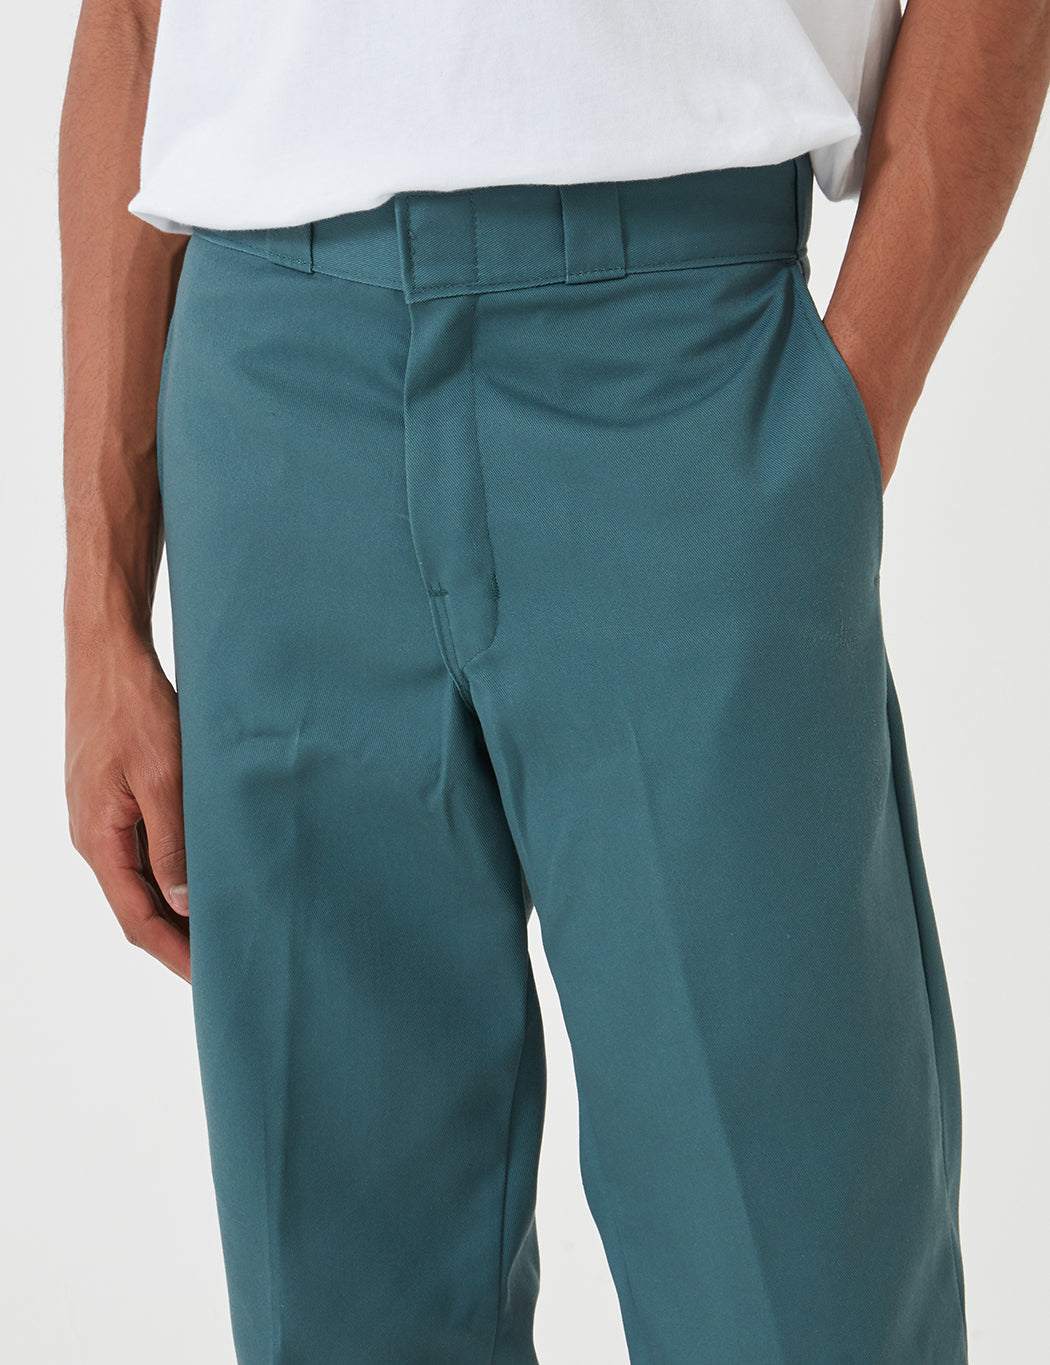 Dickies 874 Original Work Pant (Relaxed) - Lincoln Green